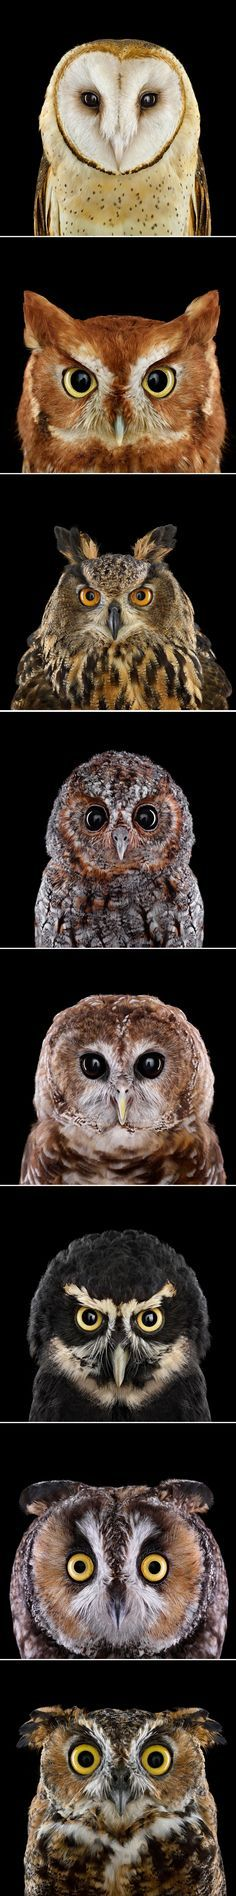 Who\'s Who: These owls may wear the same game face, but when it comes to personality, they're as different as day and night. Photos by Brad Wilson. | Audubon Society